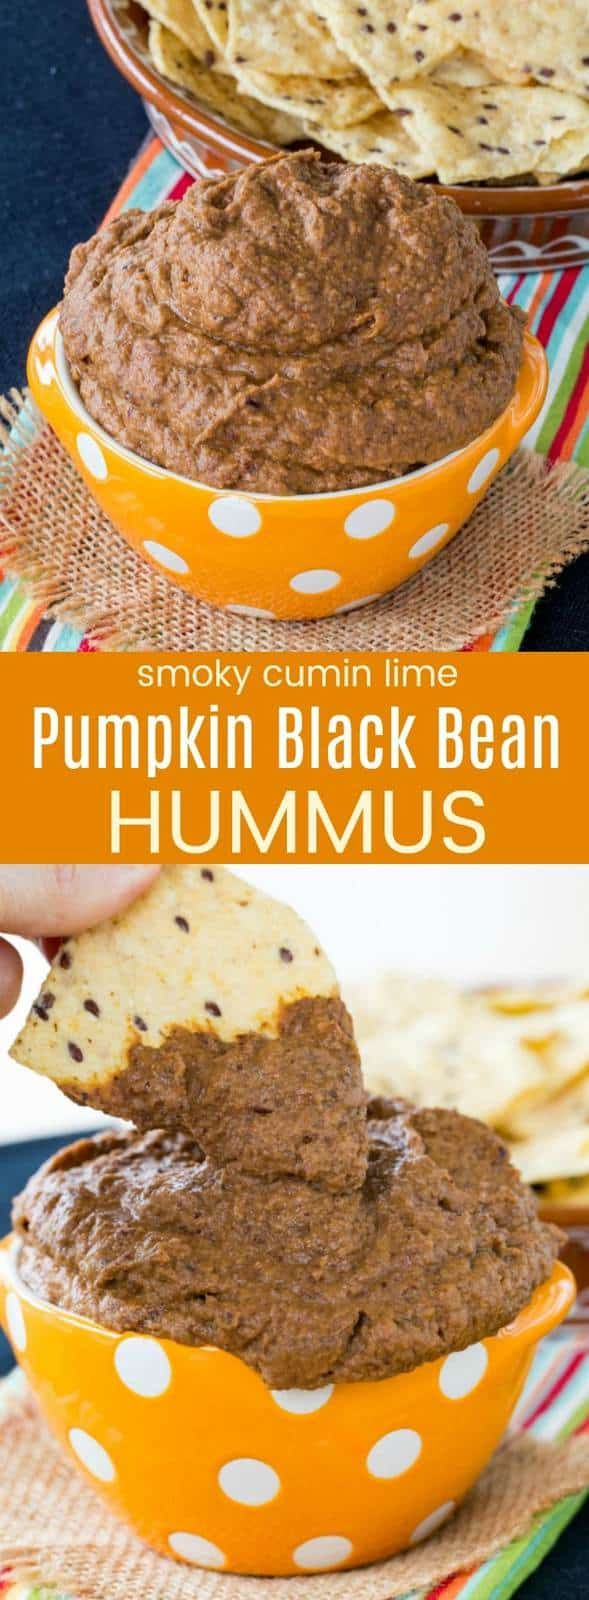 Smoky Cumin and Lime Pumpkin Black Bean Hummus - an easy black bean dip recipe that is perfect for fall with just a hint of spice. A naturally gluten-free and vegan appetizer or healthy snack! #hummus #pumpkin #glutenfree #vegan